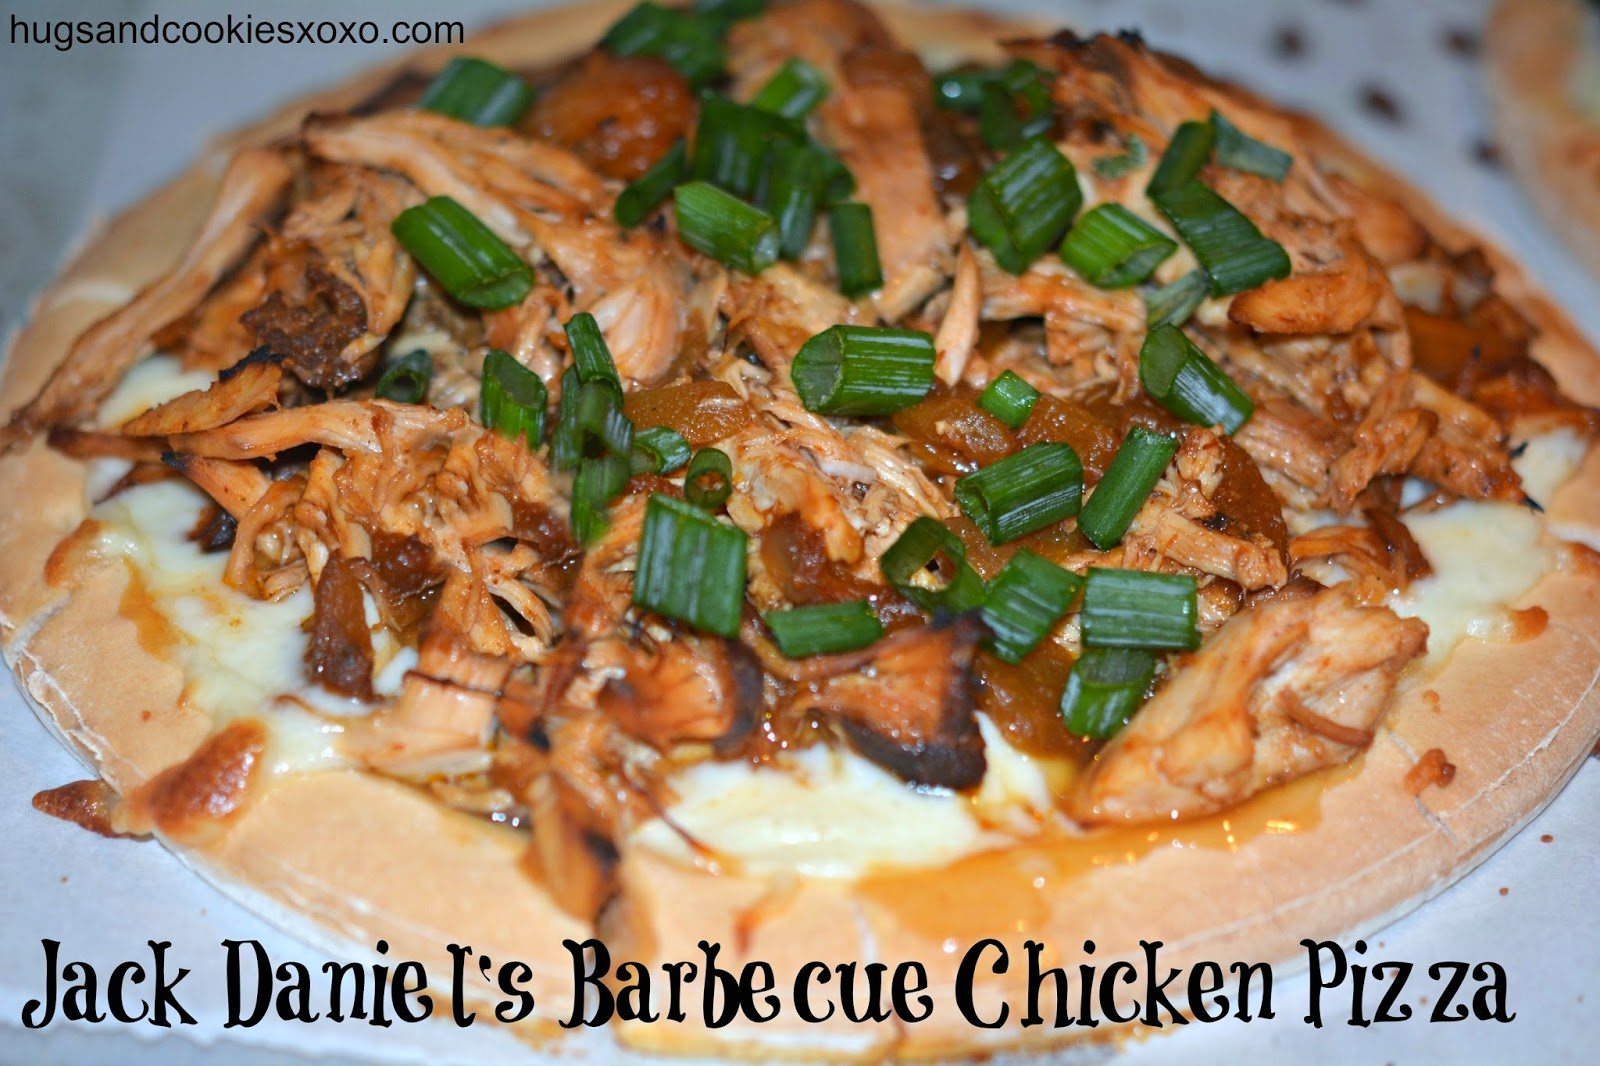 Jack daniels barbecue chicken pizza hugs and cookies xoxo have leftover chicken from this awesome jack daniels chicken recipe whip up a barbecue chicken pizza use any crust you like i used udis gluten free forumfinder Images